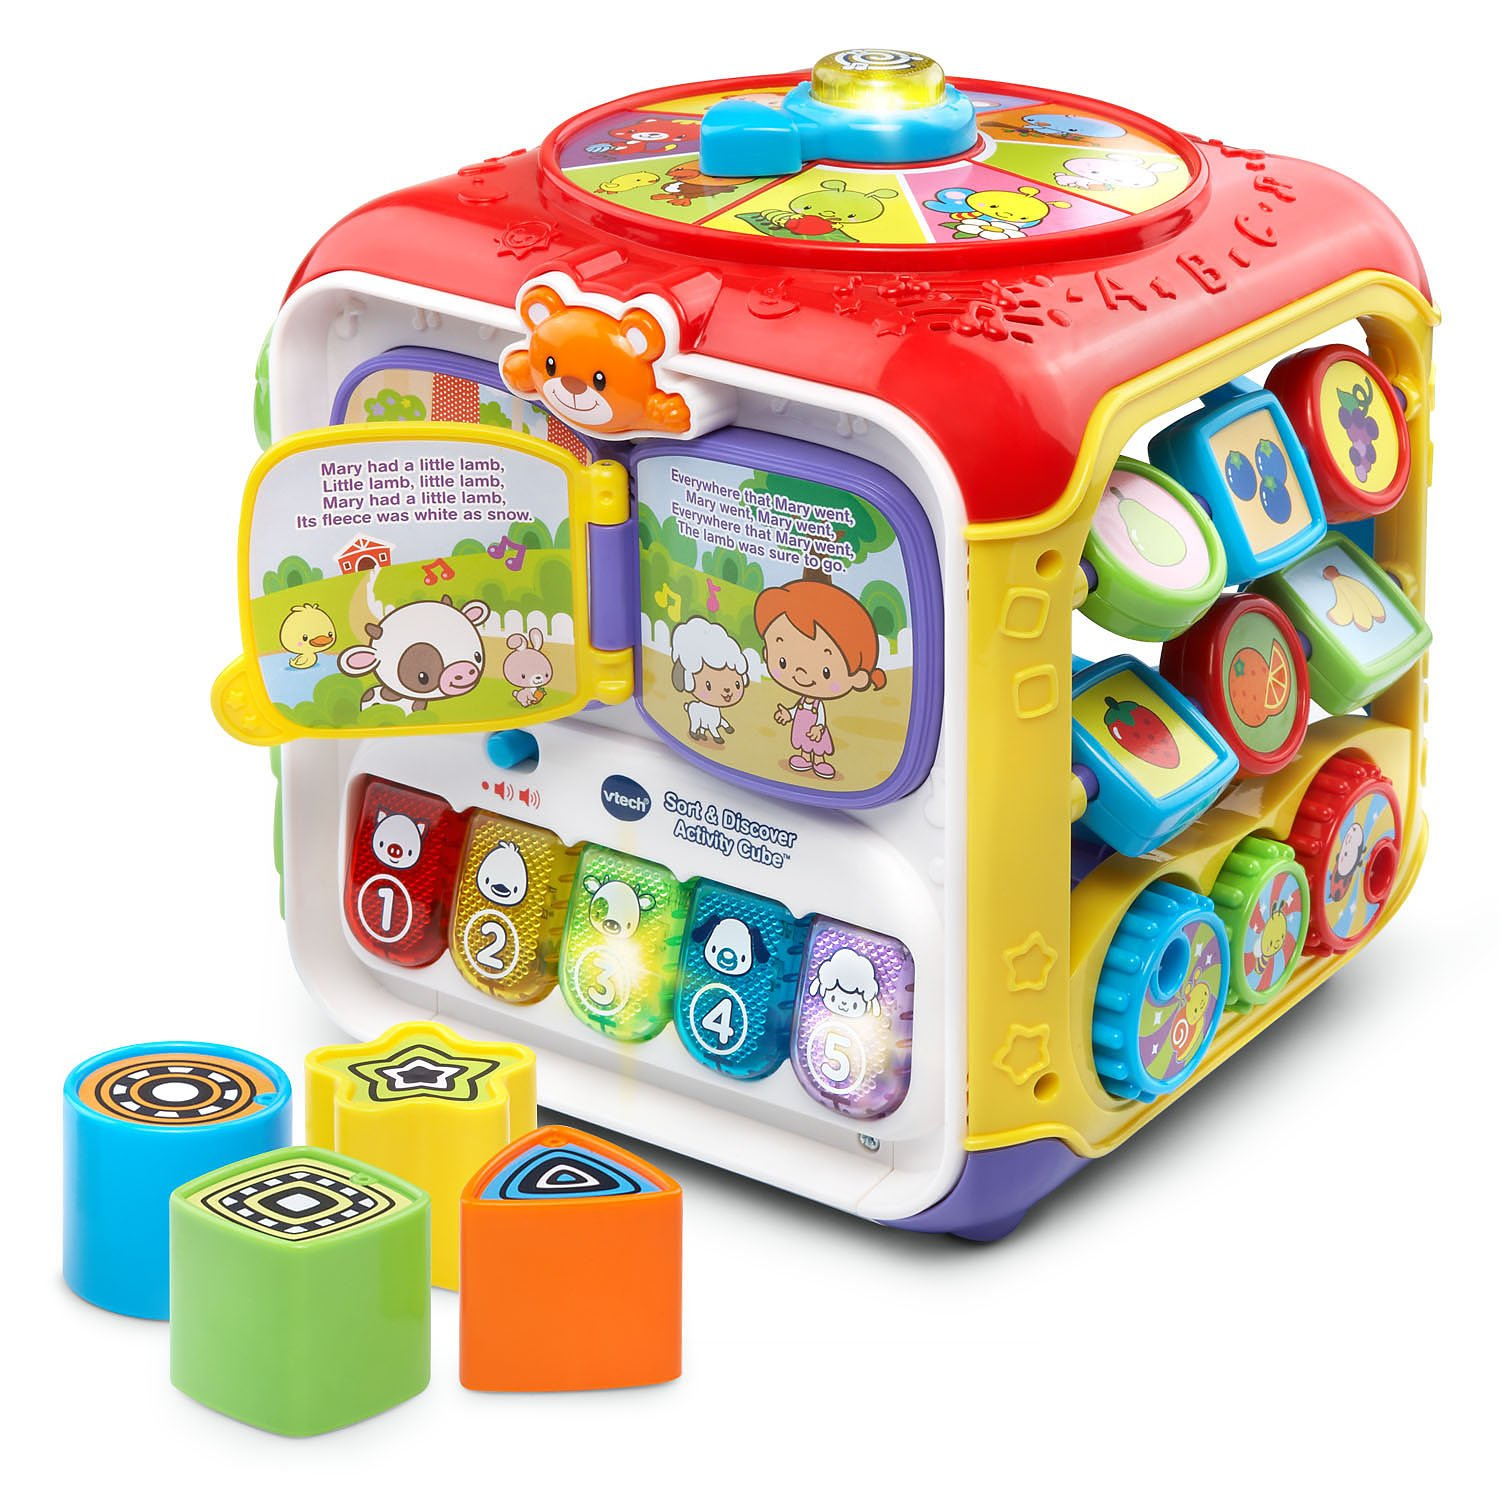 Amazon VTech Sort & Discover Activity Cube Frustration Free